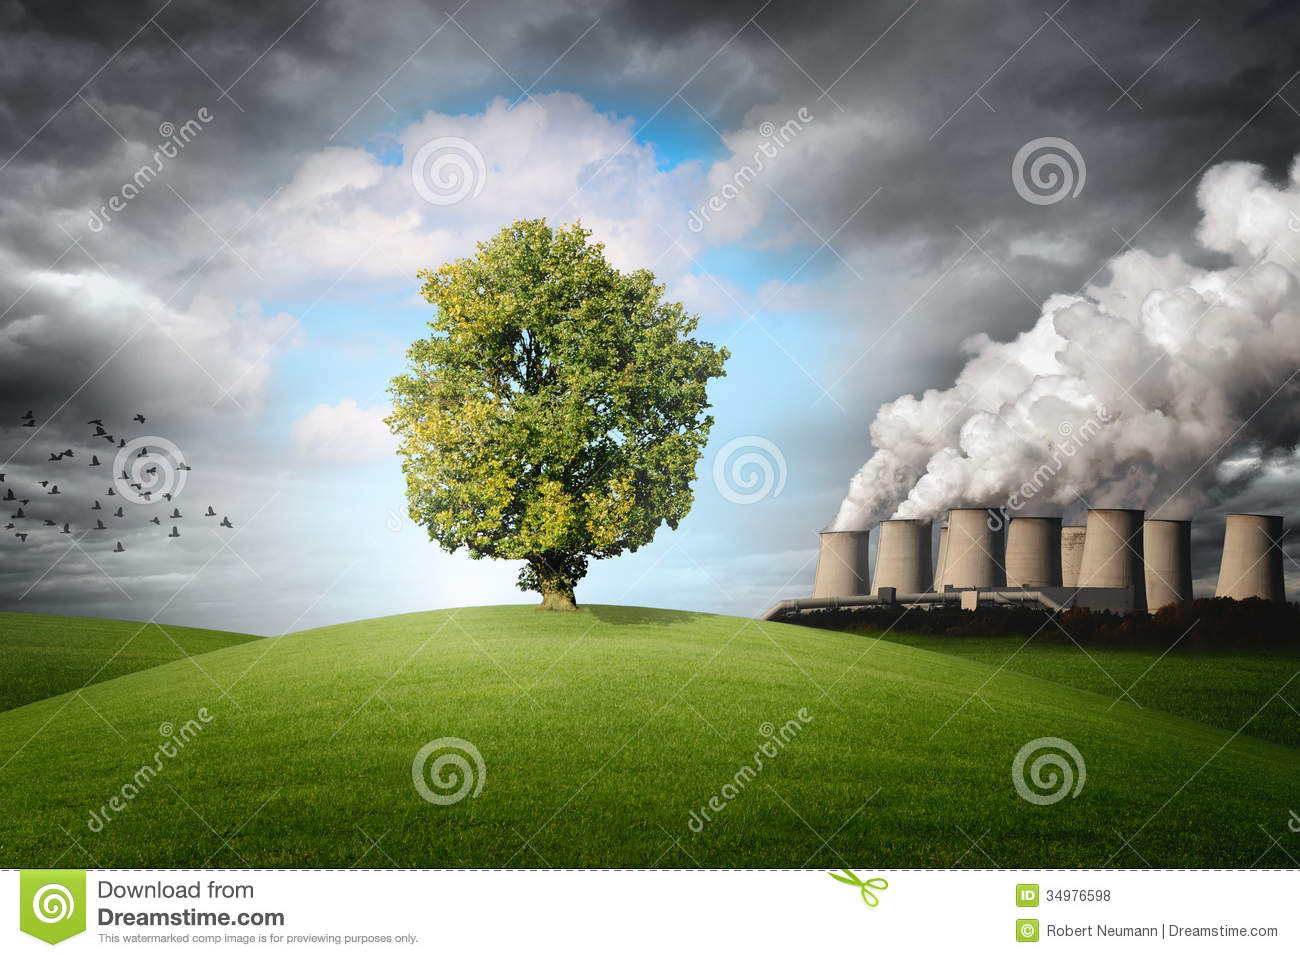 Om 3d Wallpaper Download Pollution Of The Environment Stock Illustration Image